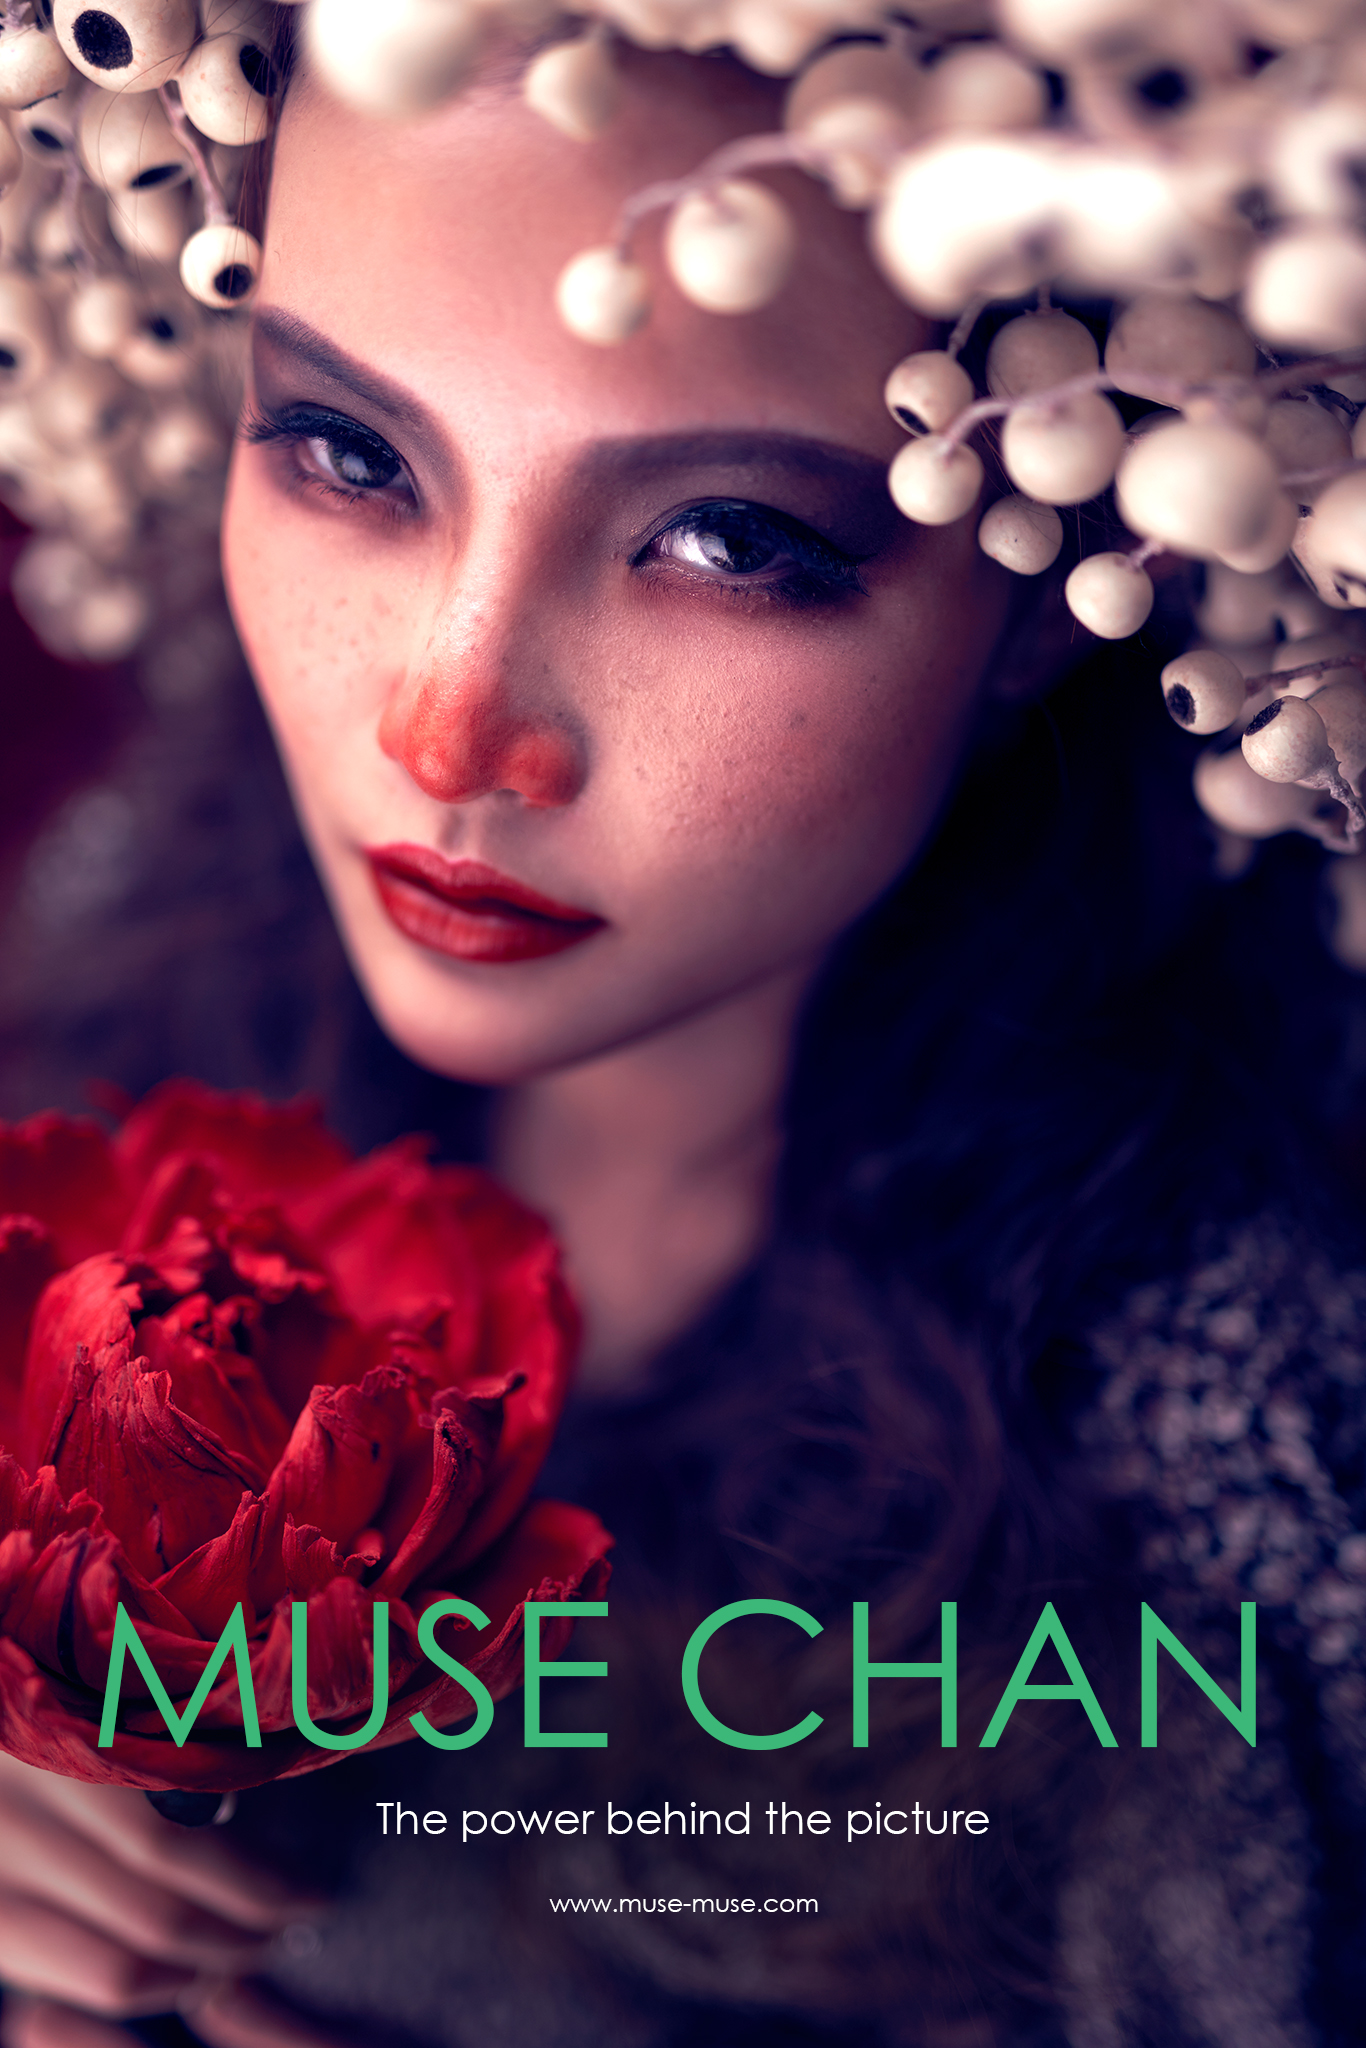 Muse Chan